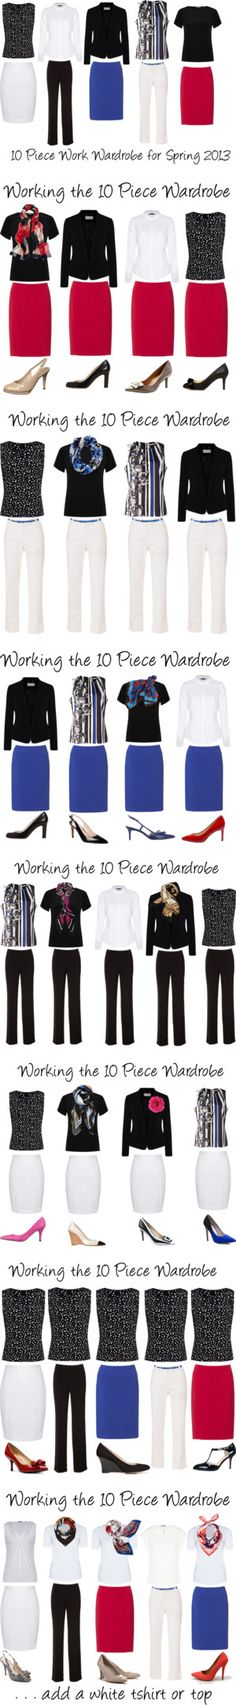 Working the 10 Piece Wardrobe ~ Spring 2013 by annabouttown on Polyvore featuring Diana Ferrari, Callas, Mimco, CC, Ferrari, Nine West, Forever New, Jo Mercer, Nina Armando and Witchery